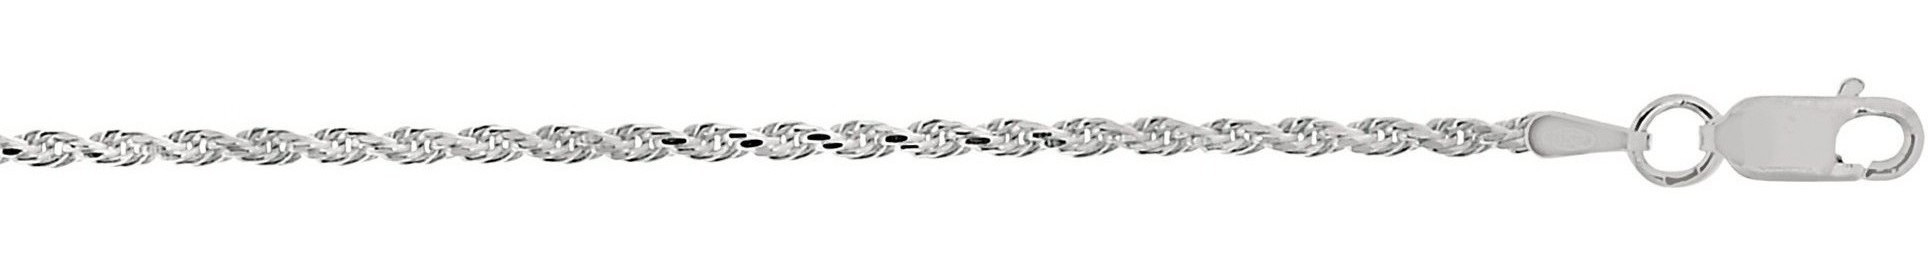 "18"" 1.8mm (0.07"") Textured Diamond Cut 925 Sterling Silver Rope Chain w/ Lobster Clasp"